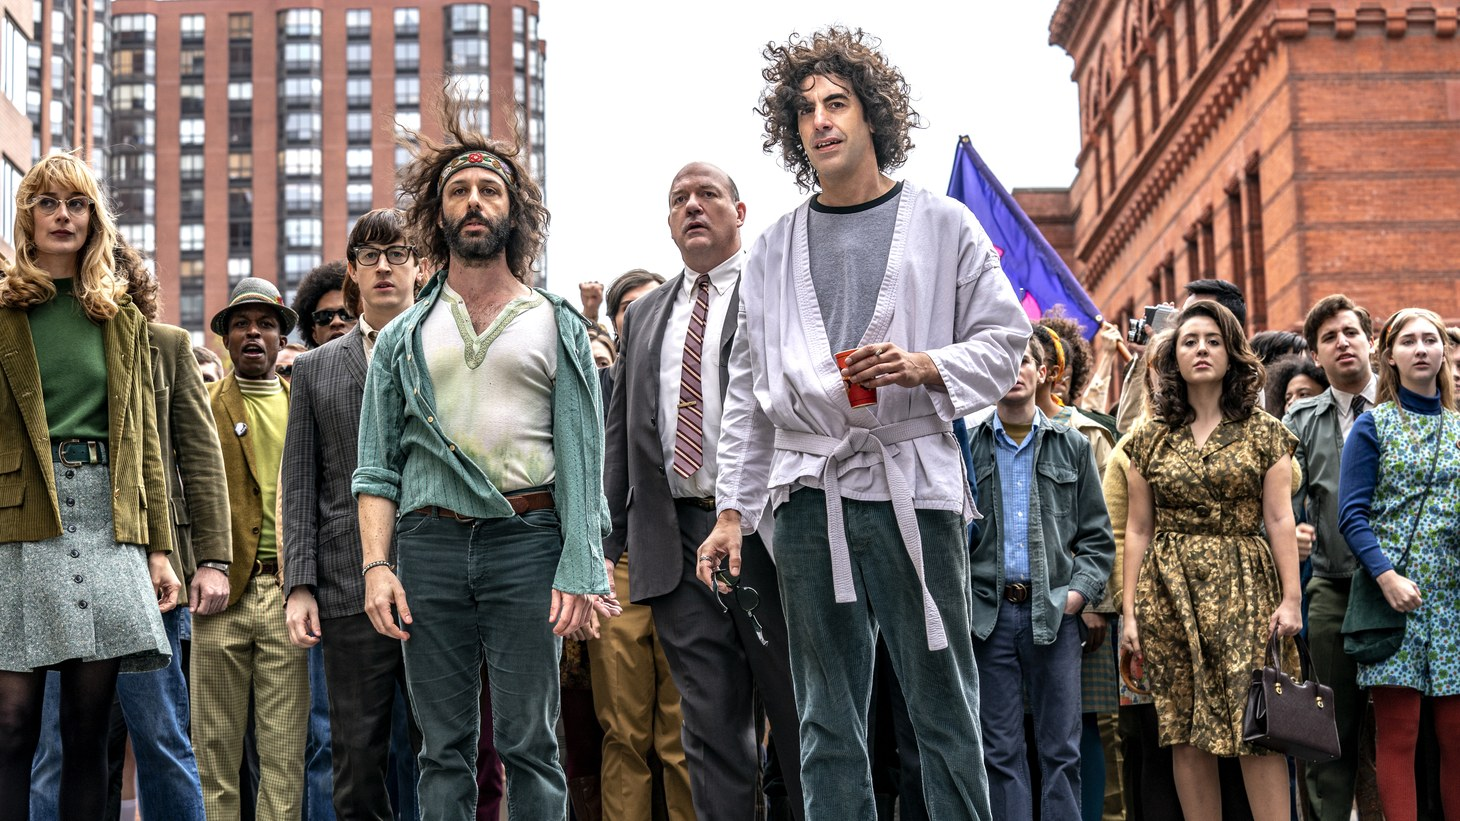 """(L-R) Caitlin Fitzgerald as Daphne O'connor, Alan Metoskie as Allen Ginsburg, Alex Sharp as Rennie Davis, Jeremy Strong as Jerry Rubin, John Carroll Lynch as David Dellinger, Sacha Baron Cohen as Abbey Hoffman, Noah Robbins as Lee Weiner in """"The Trial Of The Chicago 7"""""""